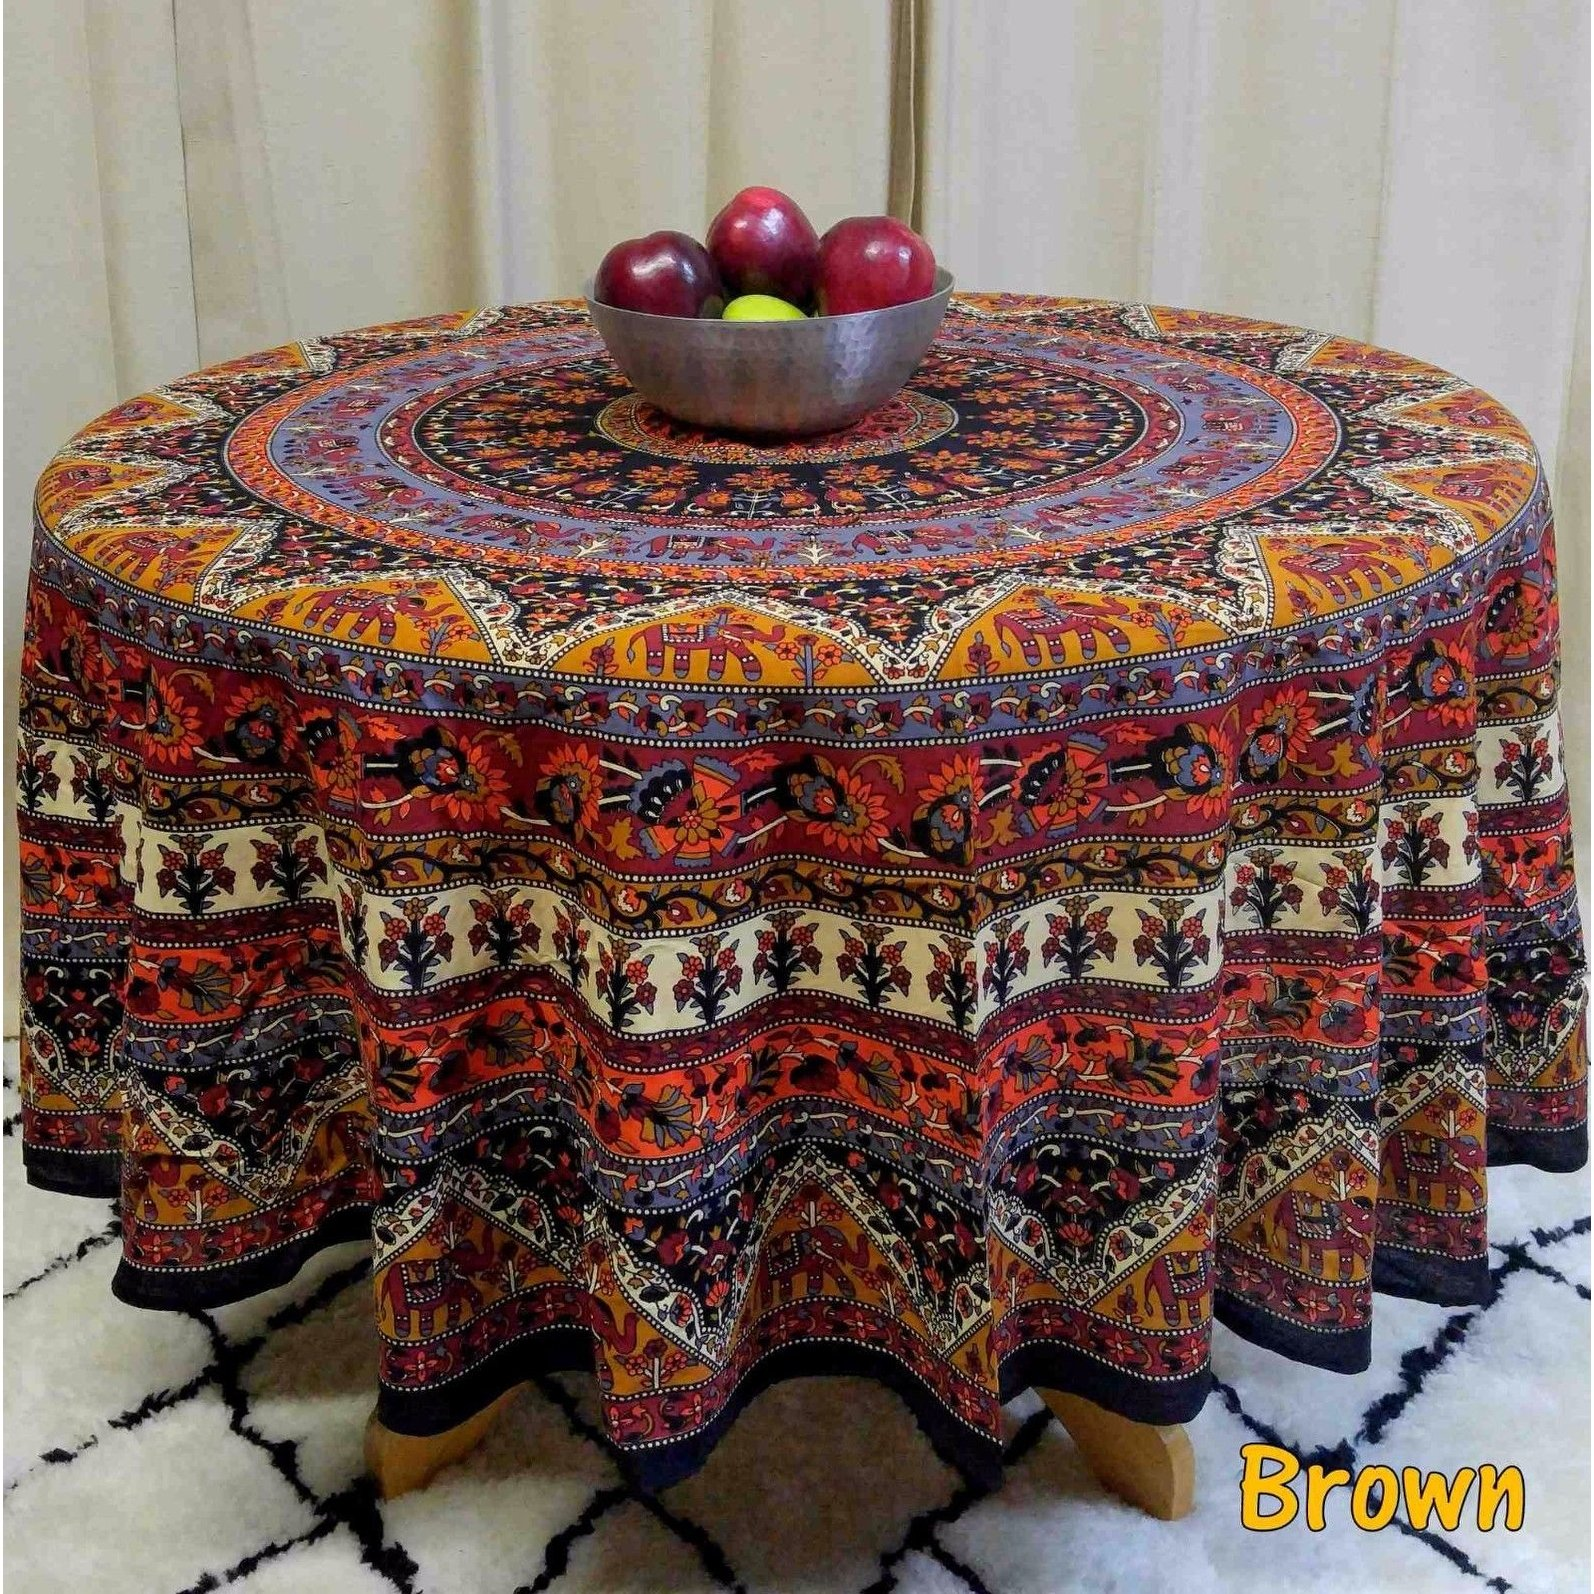 floral tablecloths our best table handmade mandala and elephant printed cotton tablecloth available red blue brown two sizes round accent cloths linens decor black marble top